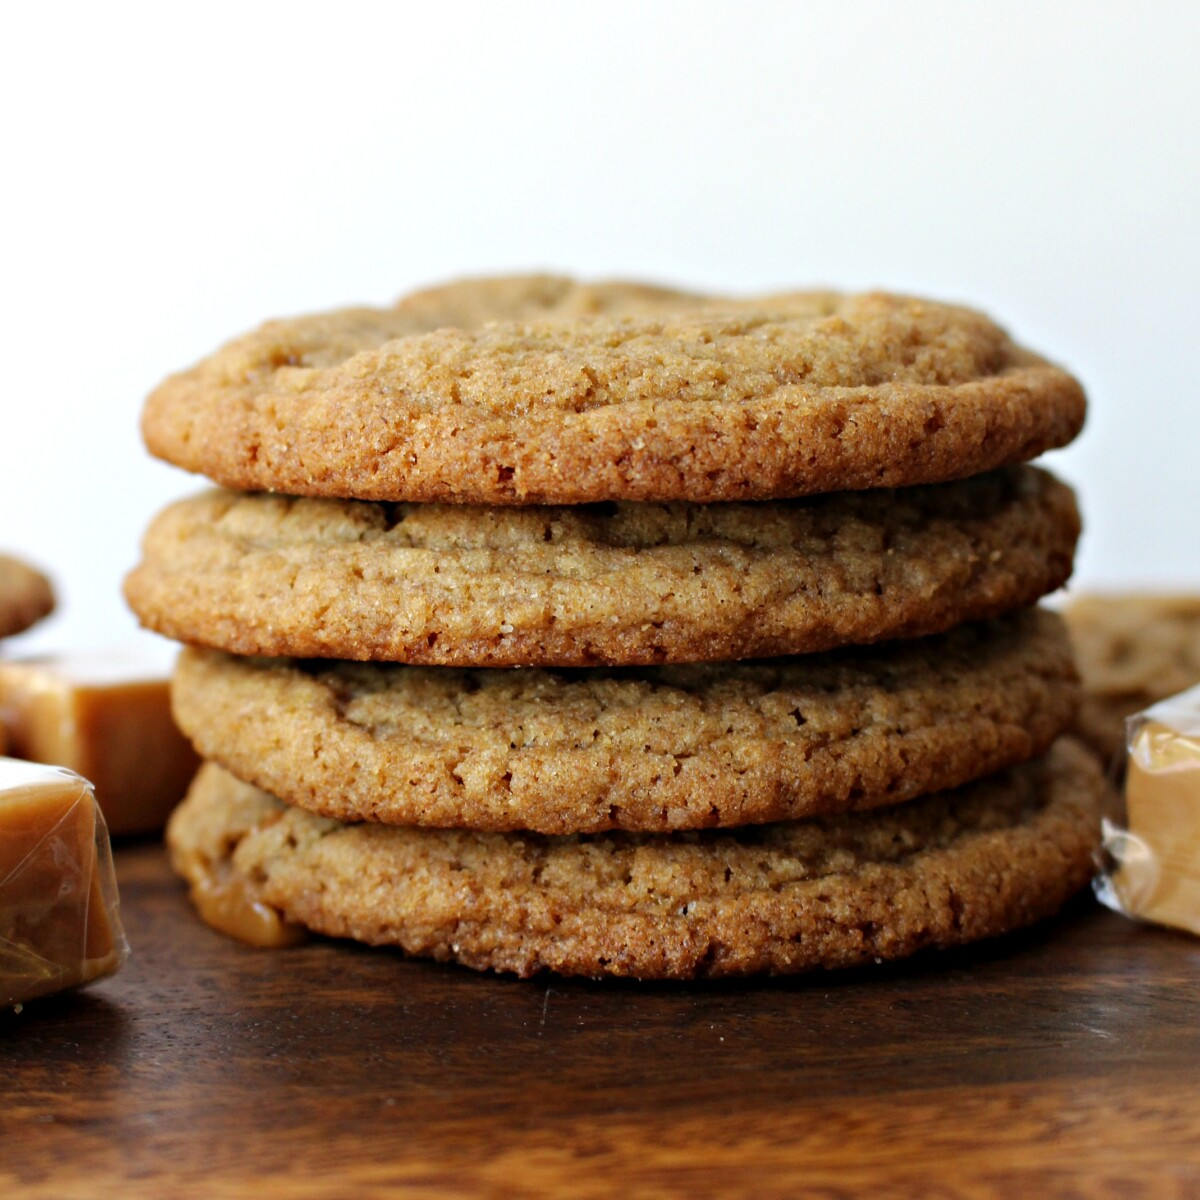 Stack of cookies from the side.